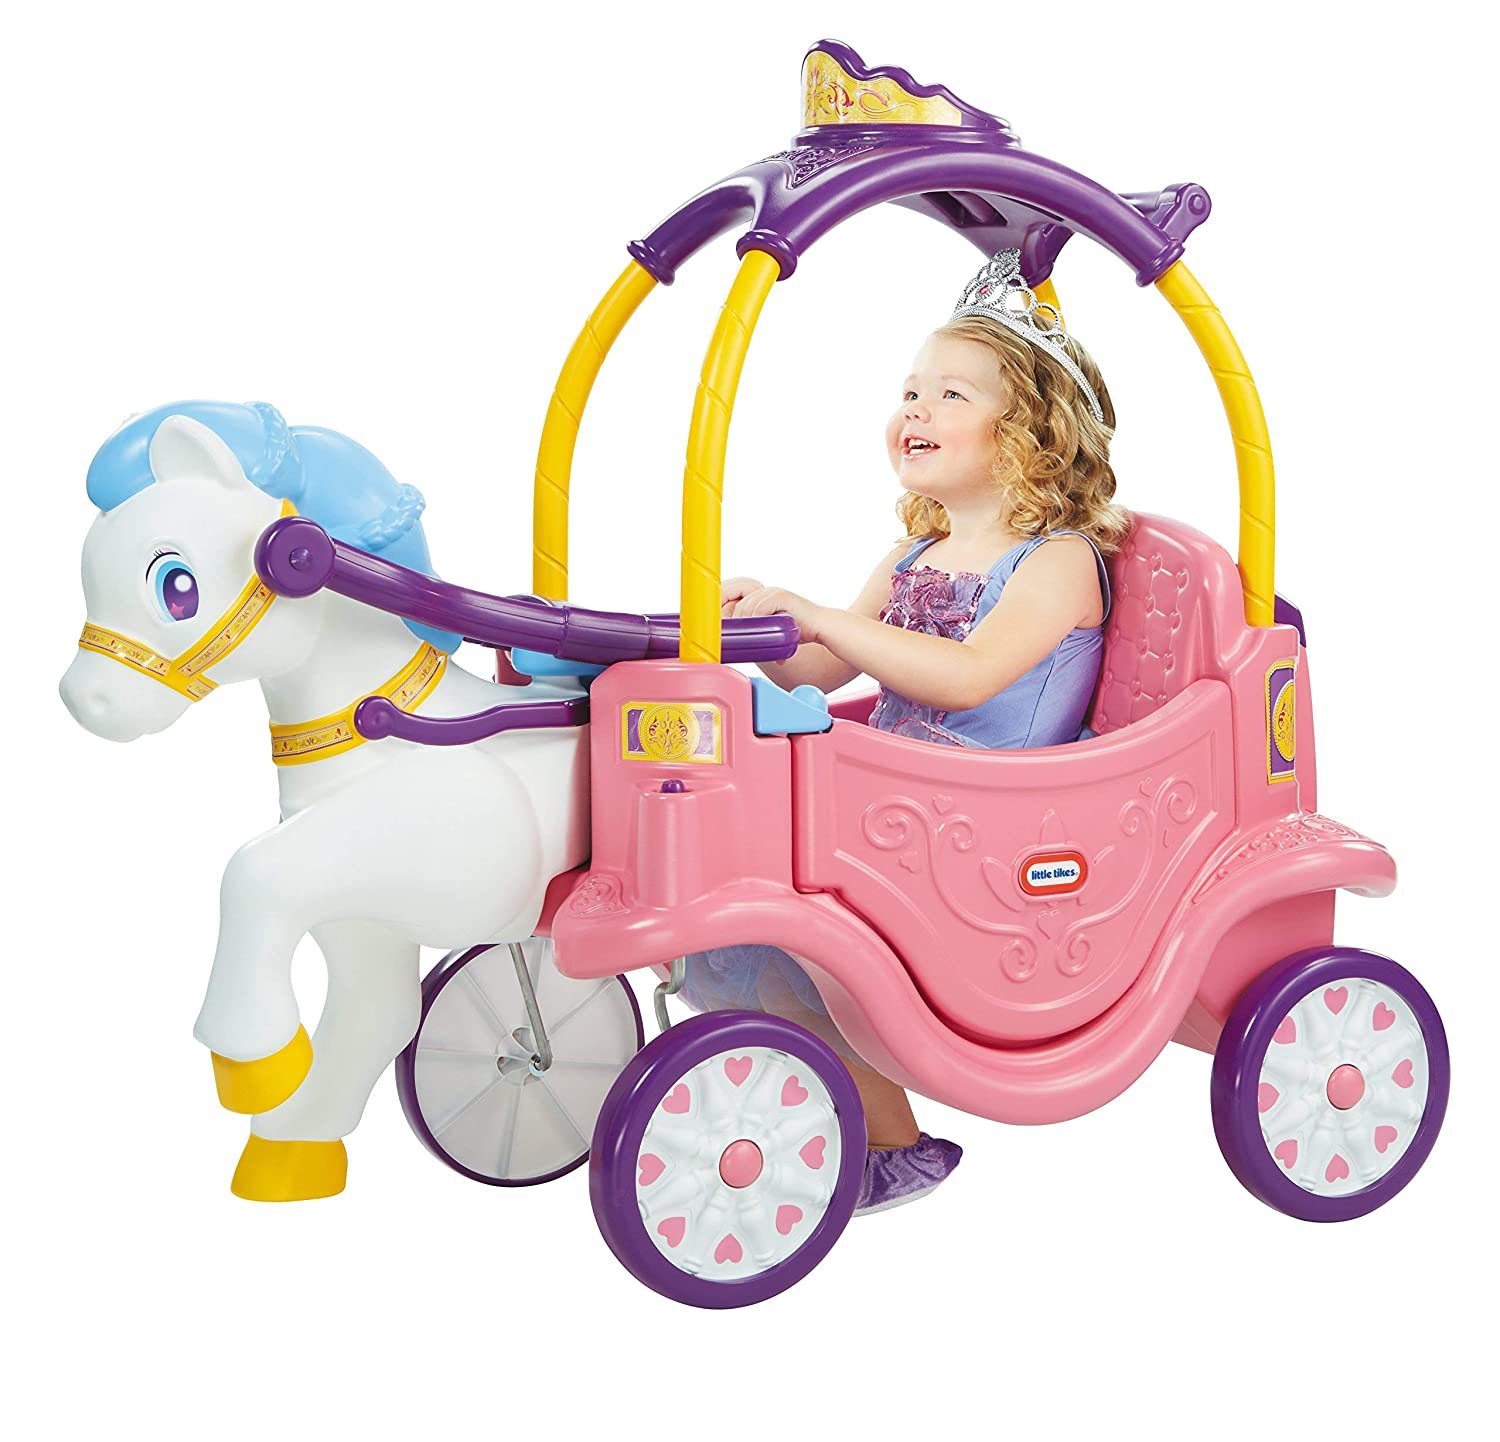 Amazon.com: Little Tikes Princess Horse & Carriage (Renewed ...